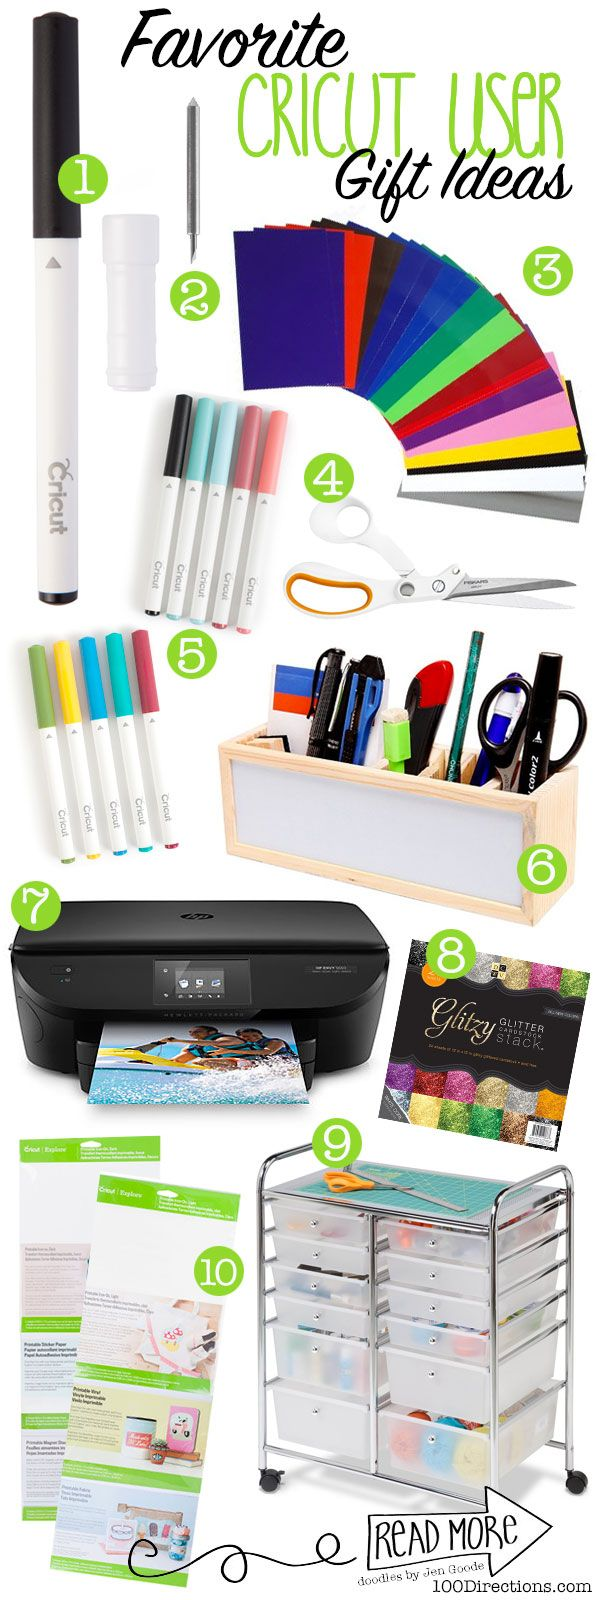 Favorite gift ideas for Cricut Users - check out my list of must have supplies that Cricut Crafters will love! (Gifts for you too, right?)